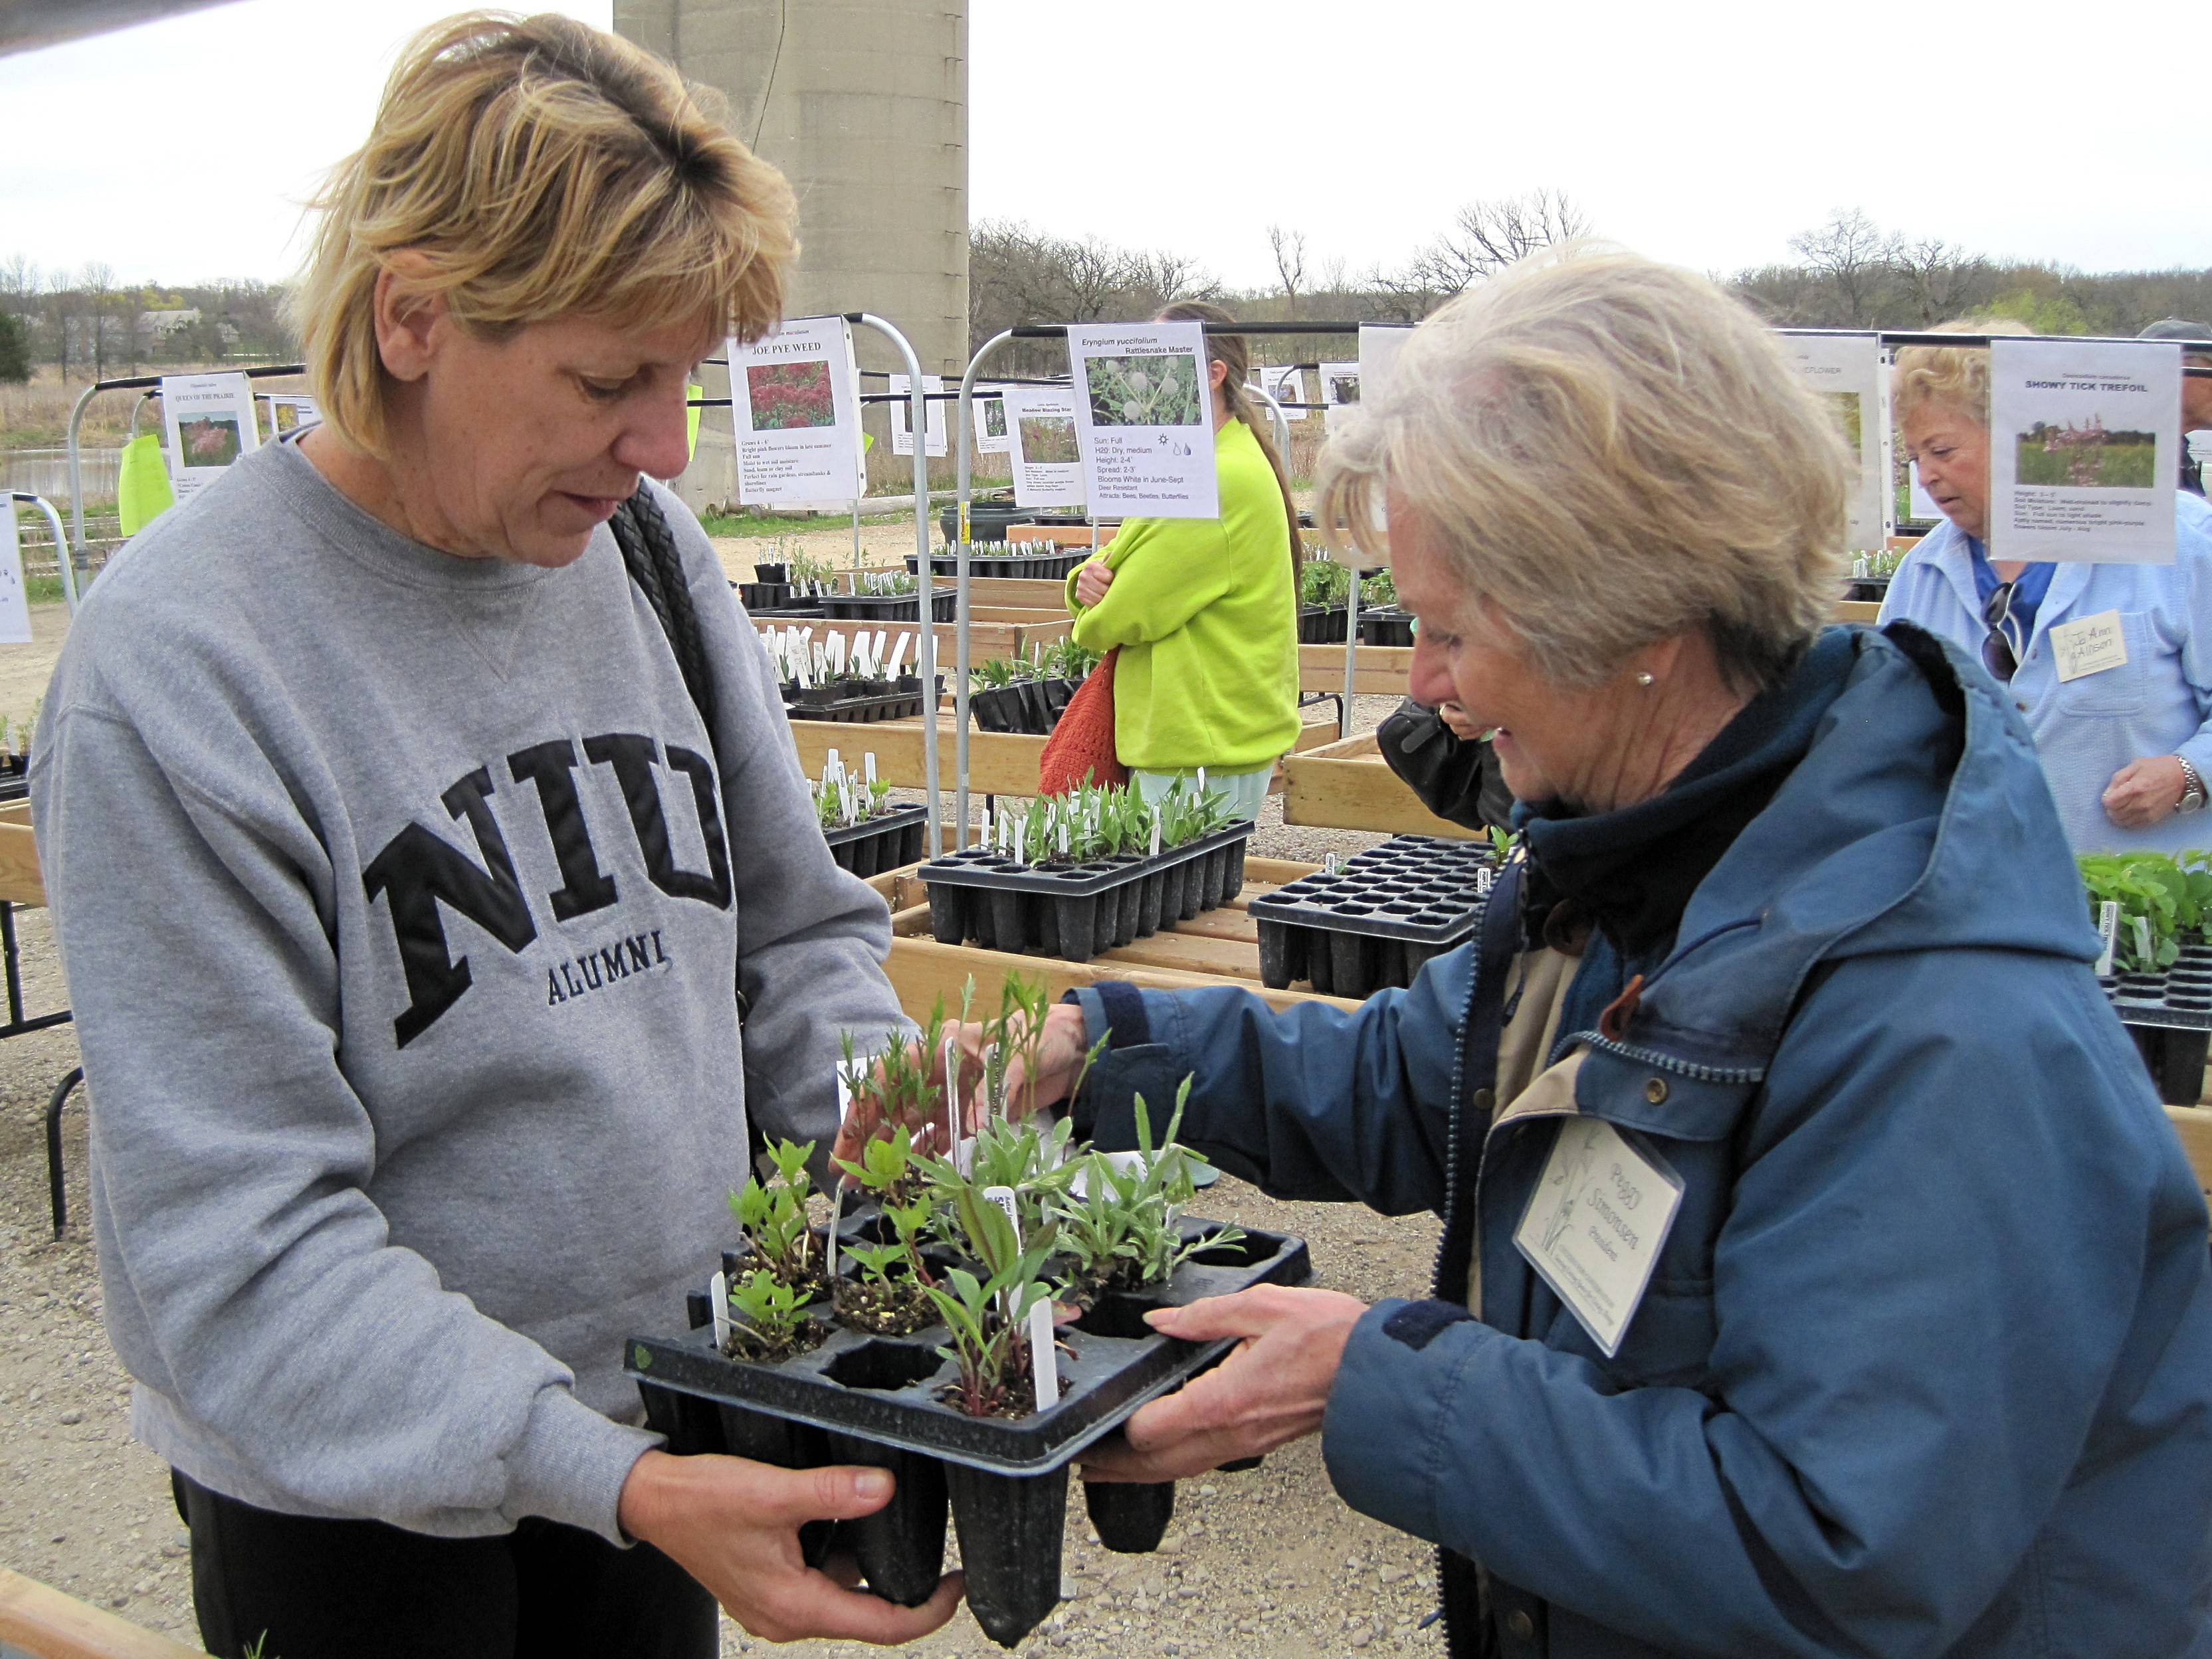 An important part of every Citizens for Conservation native plant sale is the advice shared with shoppers by the many CFC volunteers who are themselves native plant experts and enthusiasts.